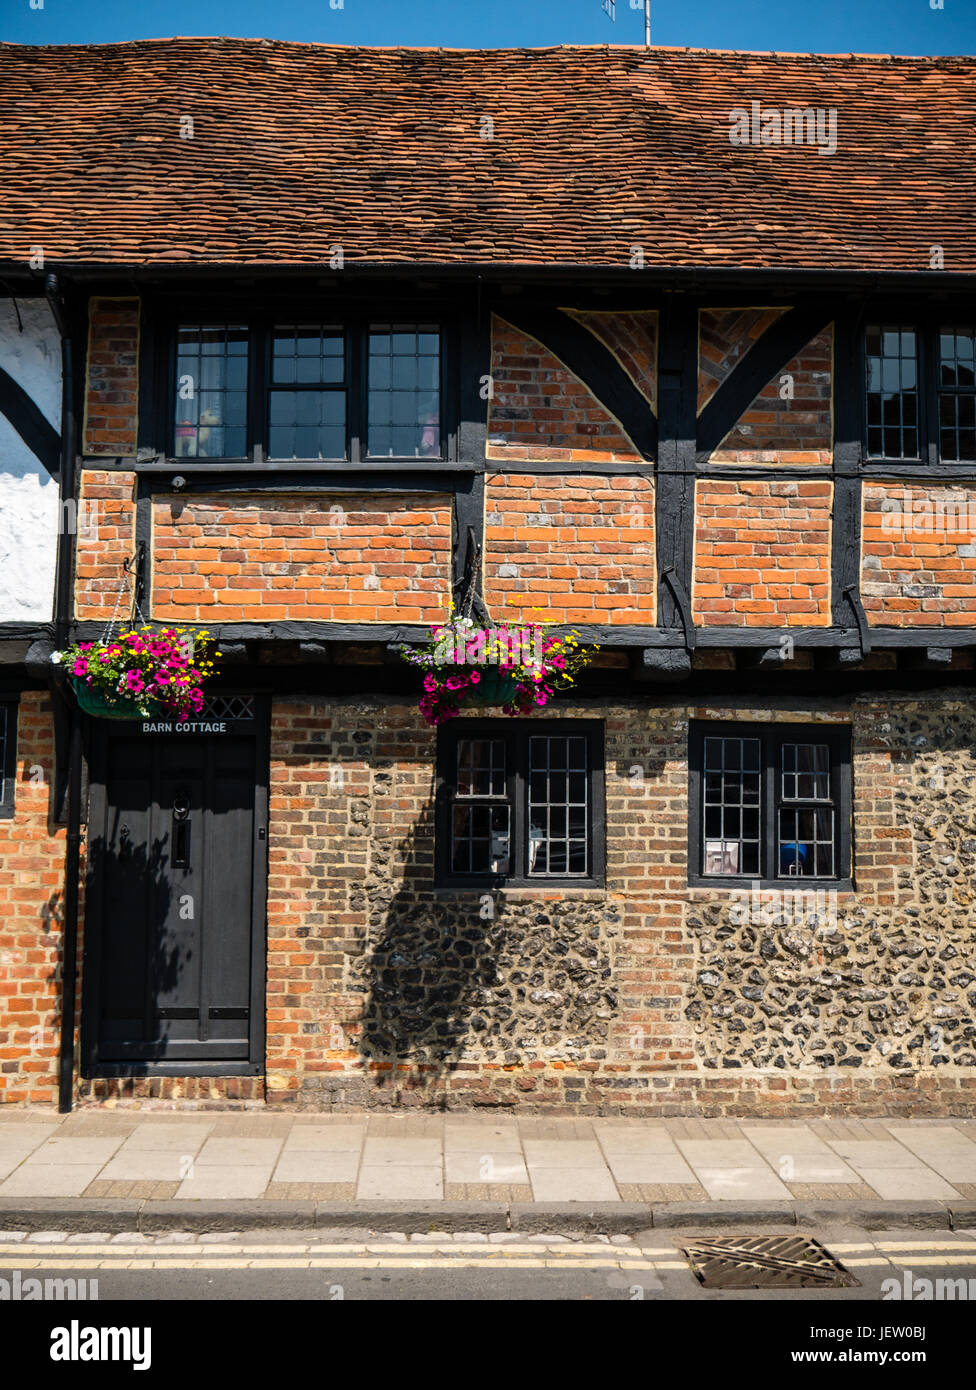 The Barn Cottage, Tudor Building, Henley-on-Thames, England, UK, GB. - Stock Image